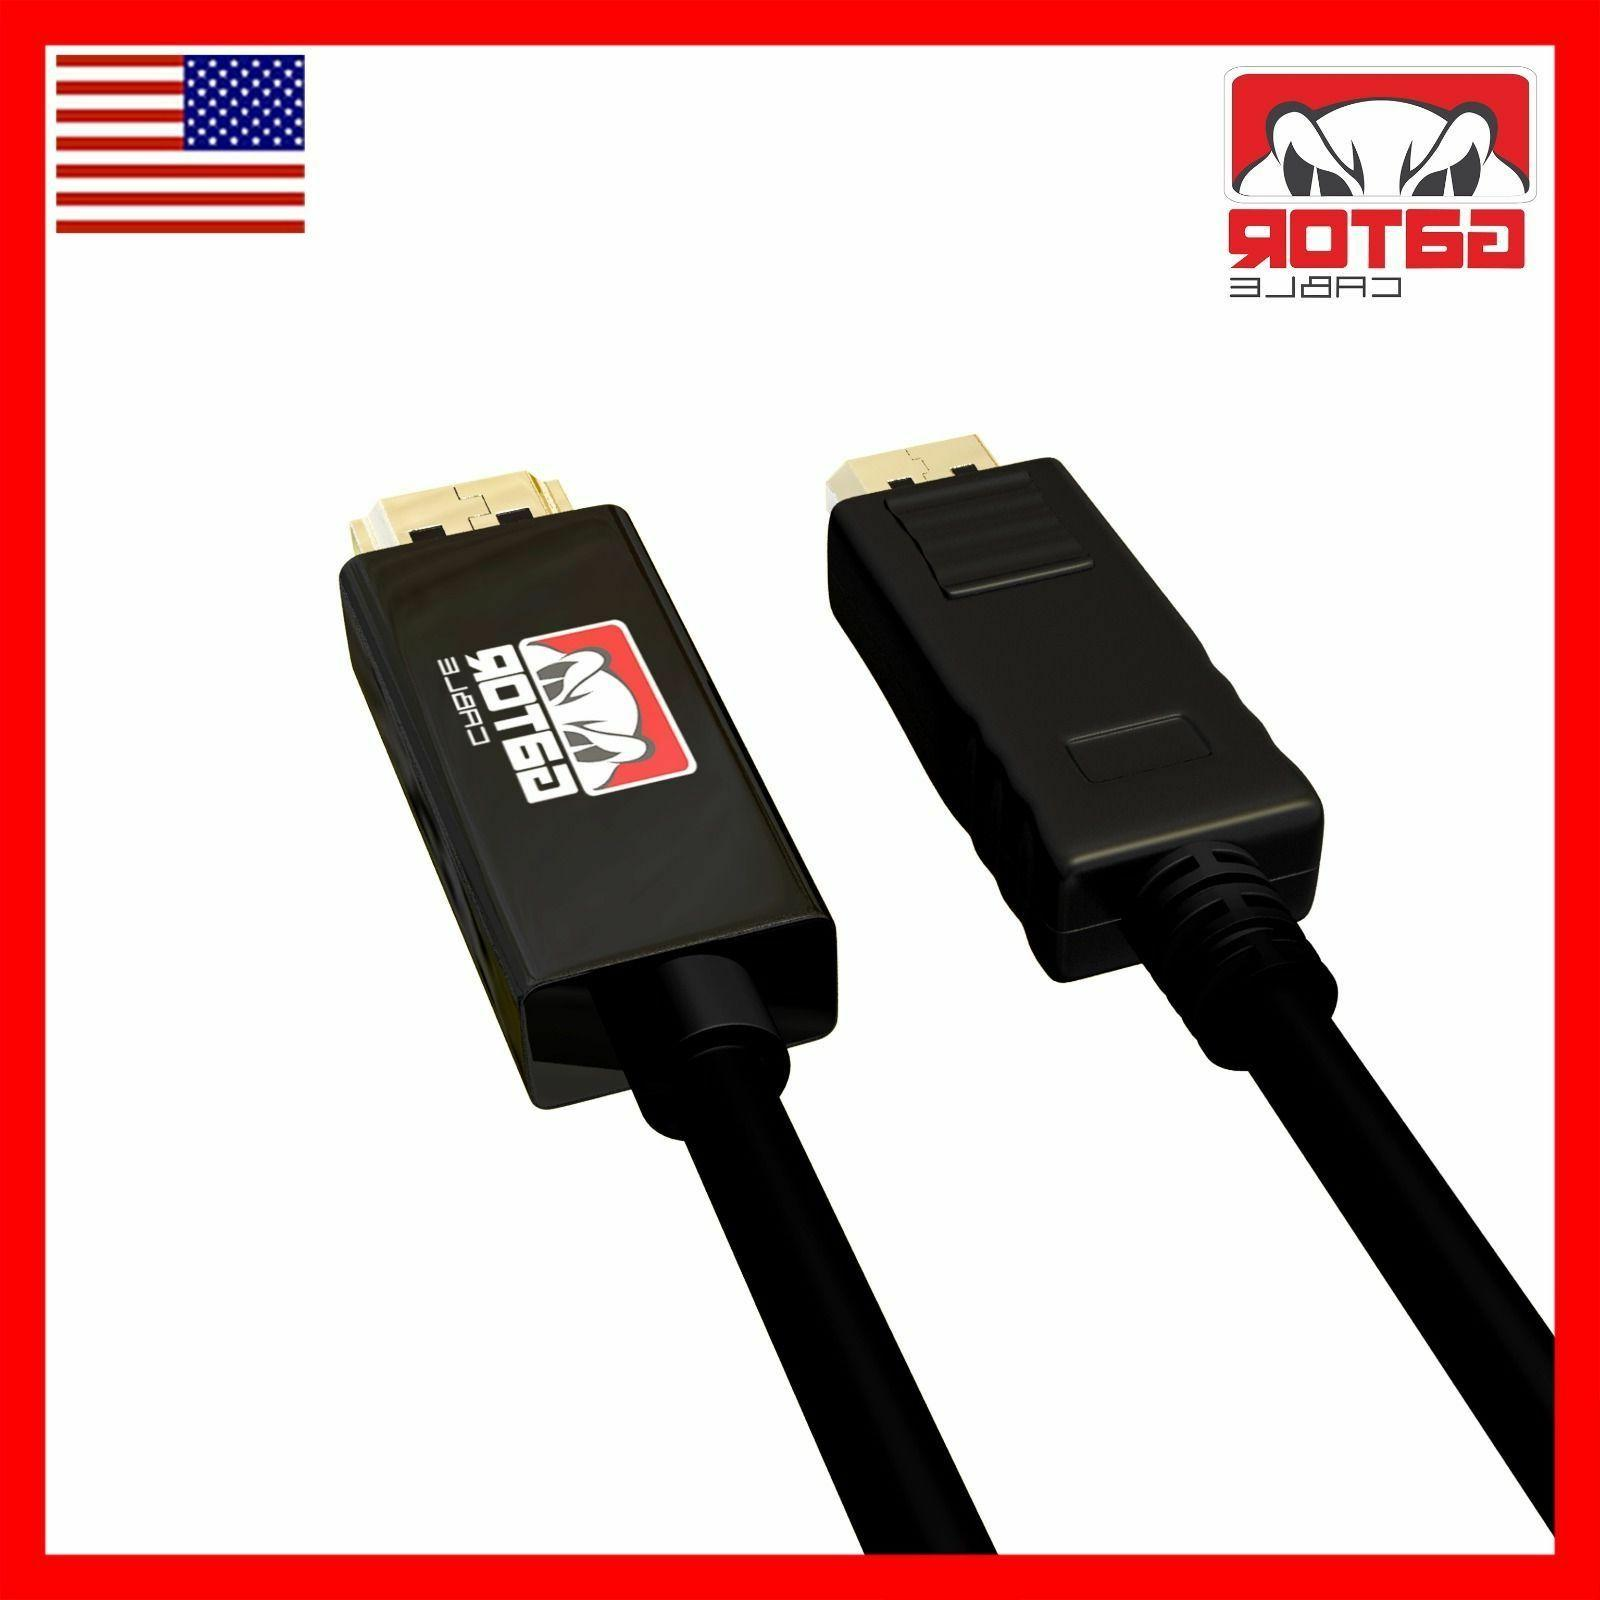 Cable Adapter Video HDTV to HDMI Cable 6FT